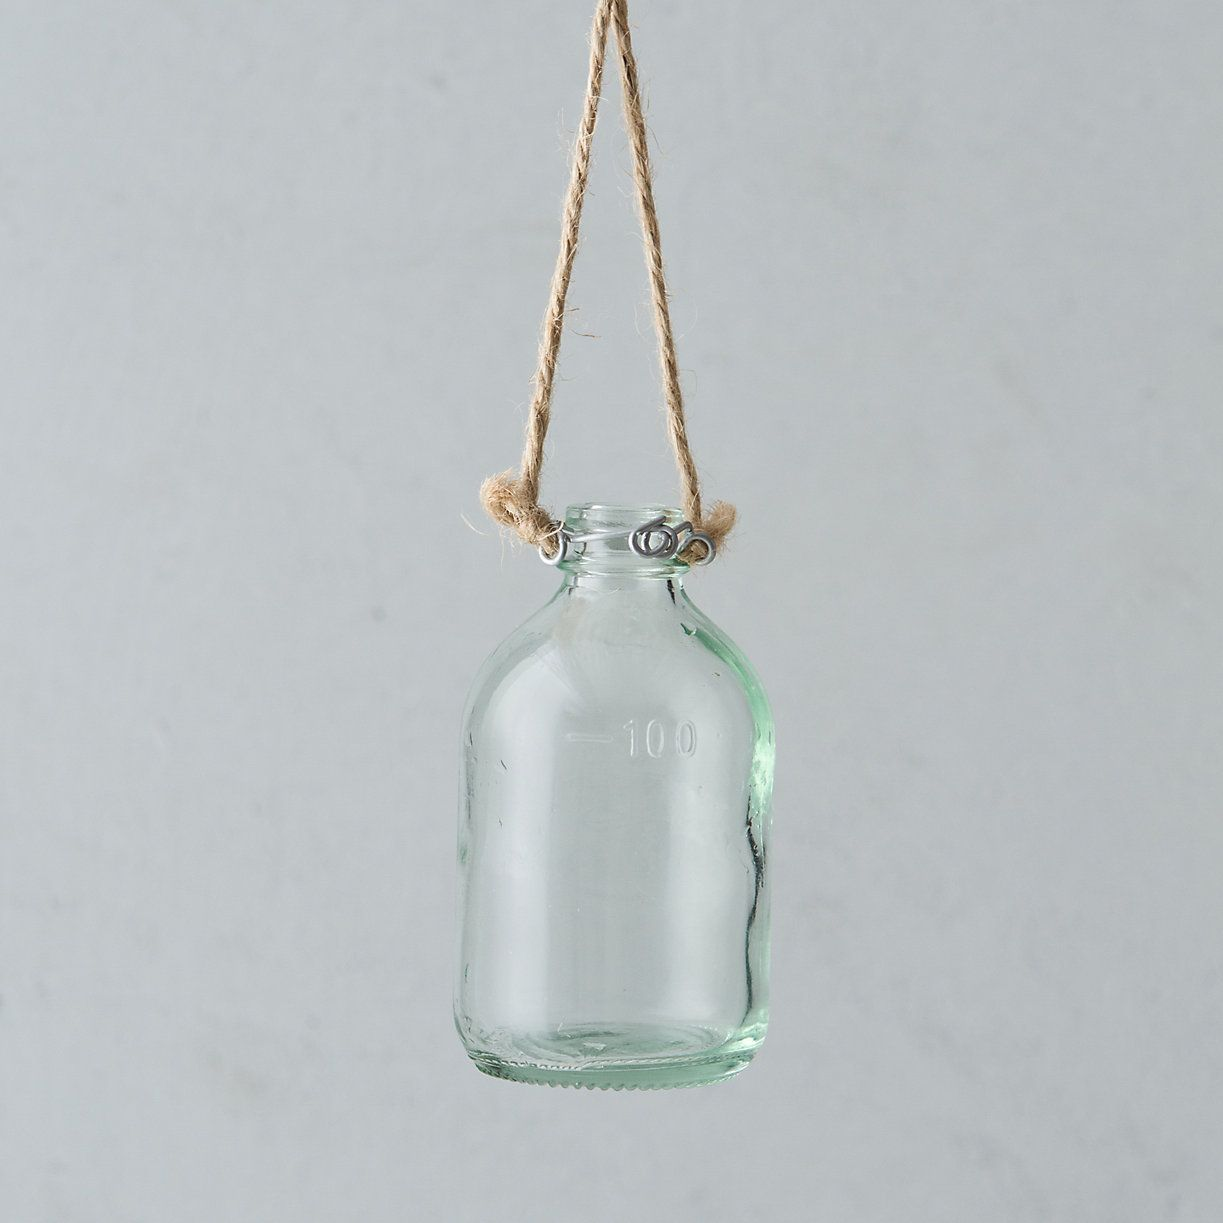 "Hanging Bud Vase Choose your favorite fresh cuts and suspend a cluster of these petite, bottle-shaped vases from garden branches or around the house for a blooming statement.  - Glass, jute twine - Wipe clean with damp cloth - Indoor or outdoor use - Hanging rope: 13""L - Imported  3.75""H, 2""diameter"